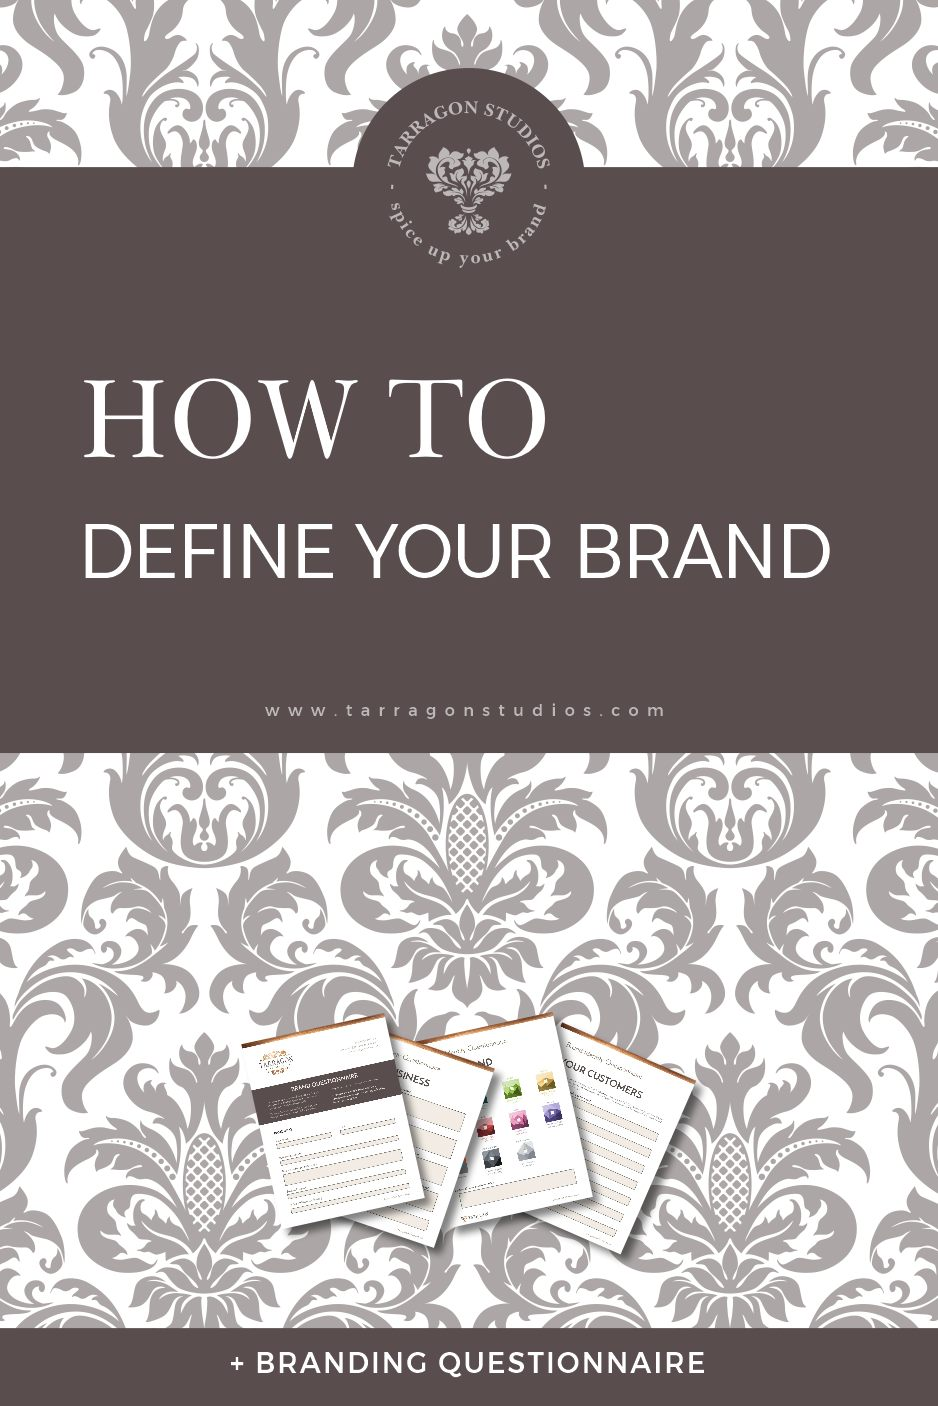 "So you've been told that you need to ""define your brand"" but you're just not sure what exactly that means or how to do it? Keep reading and find out how to give your business a boost with branding! #branding #smallbusiness #business #entrepreneurship"